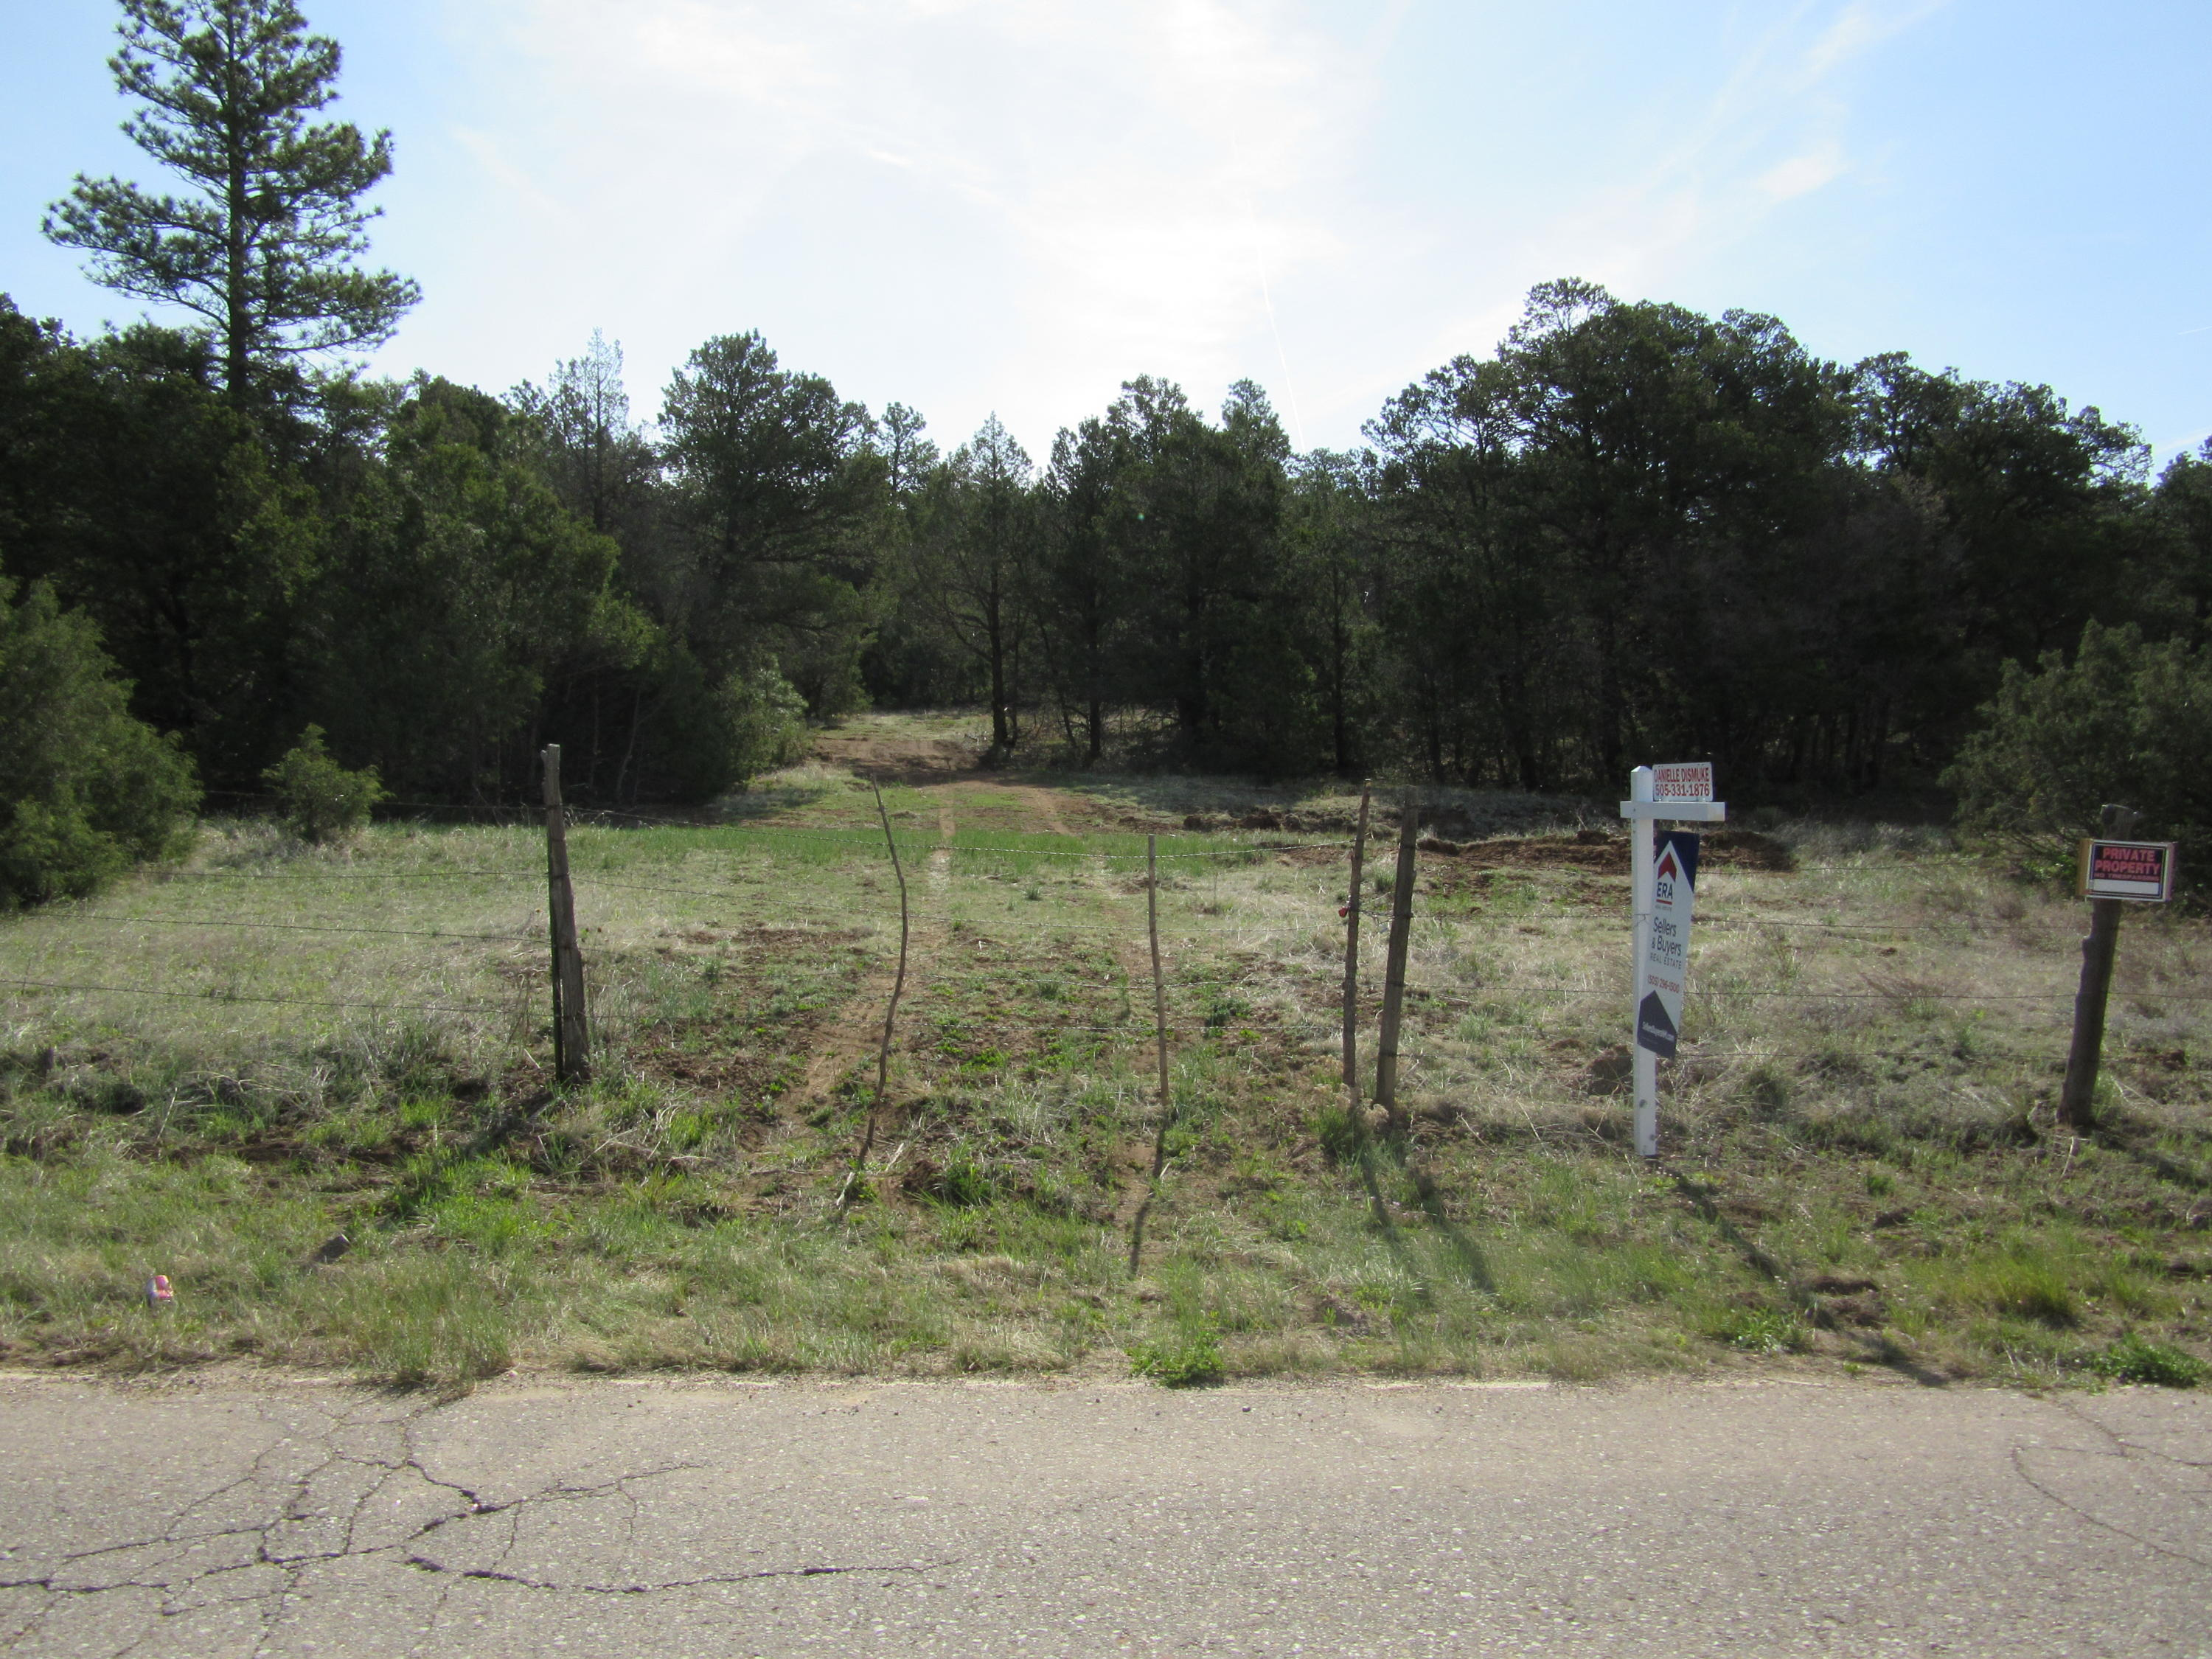 Gonzales Land Division Real Estate Listings Main Image